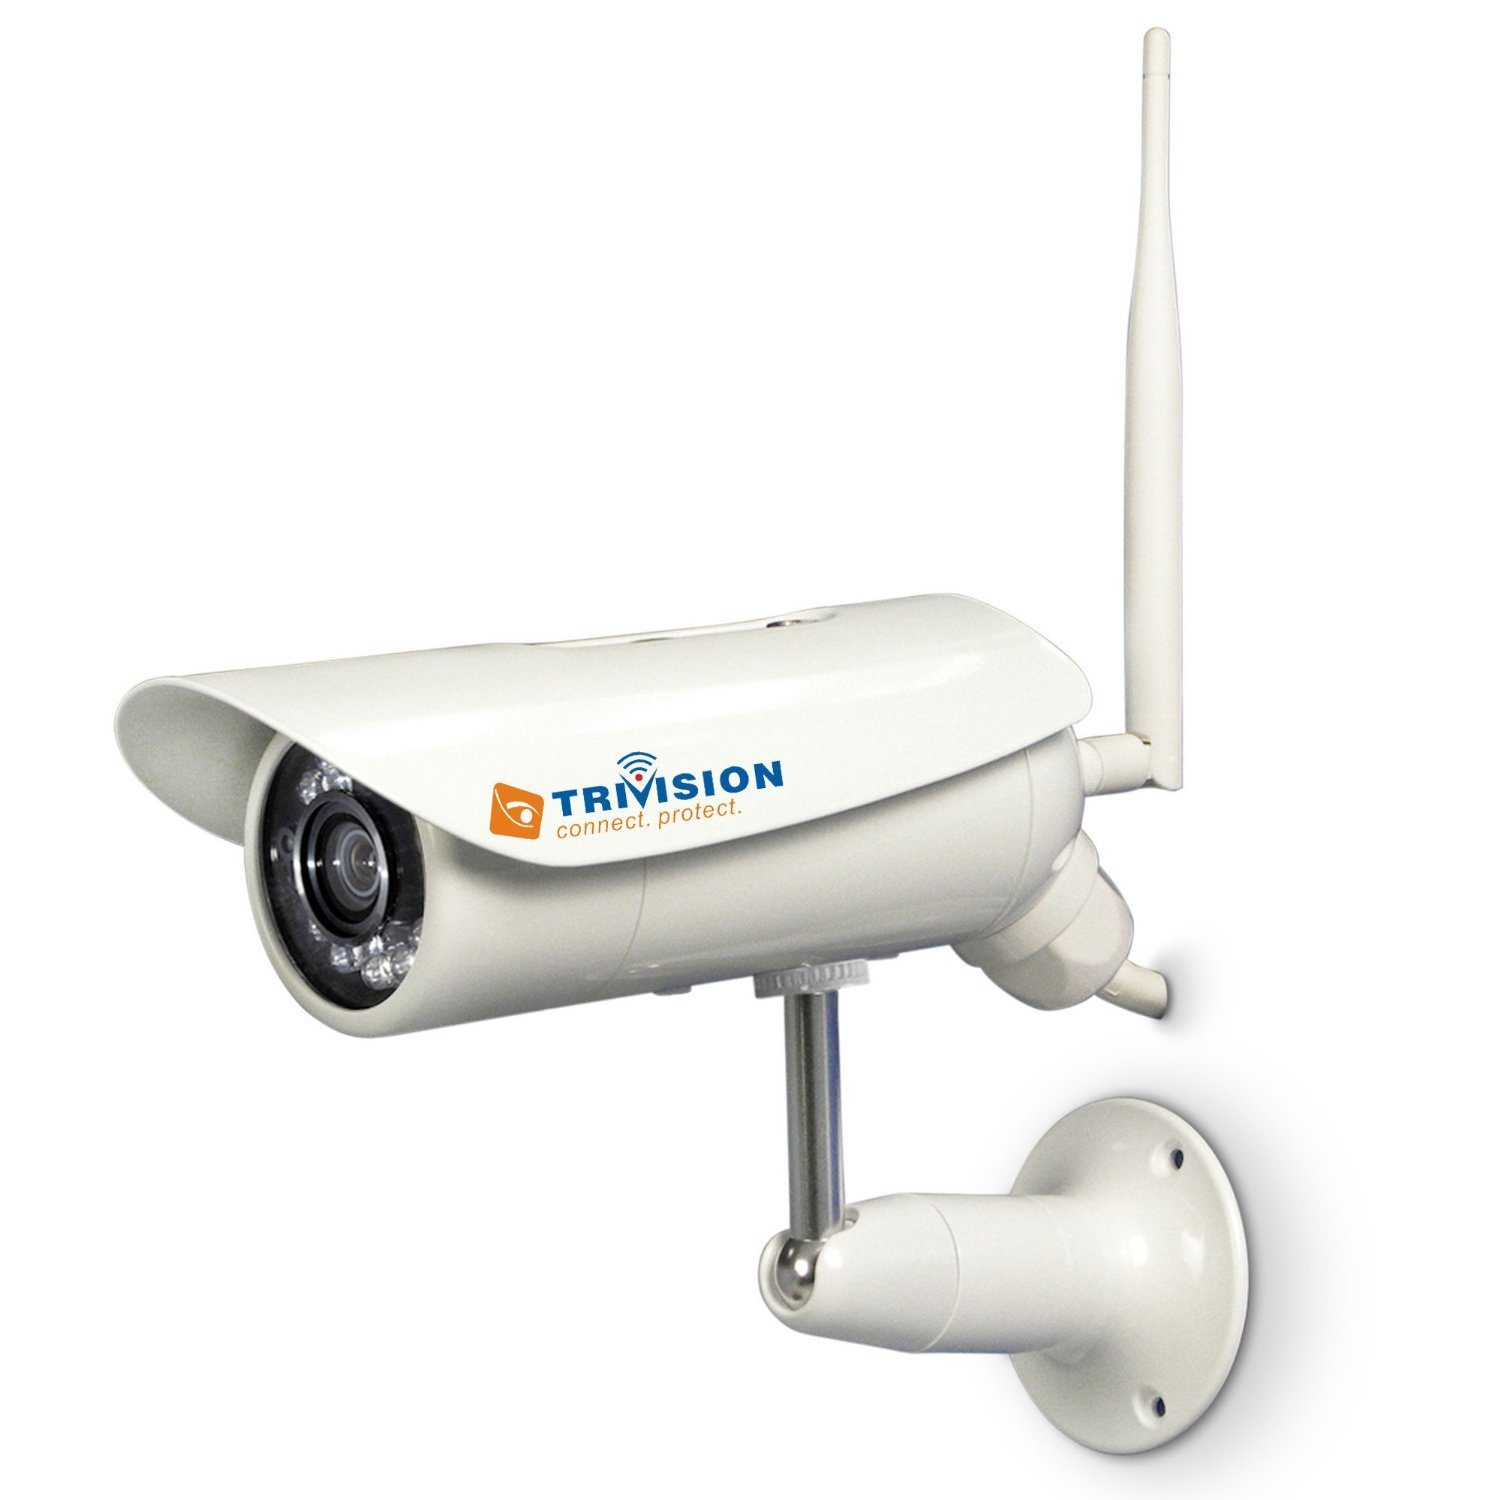 TriVision NC-336PW HD 1080P Wireless Outdoor Home Security Camera